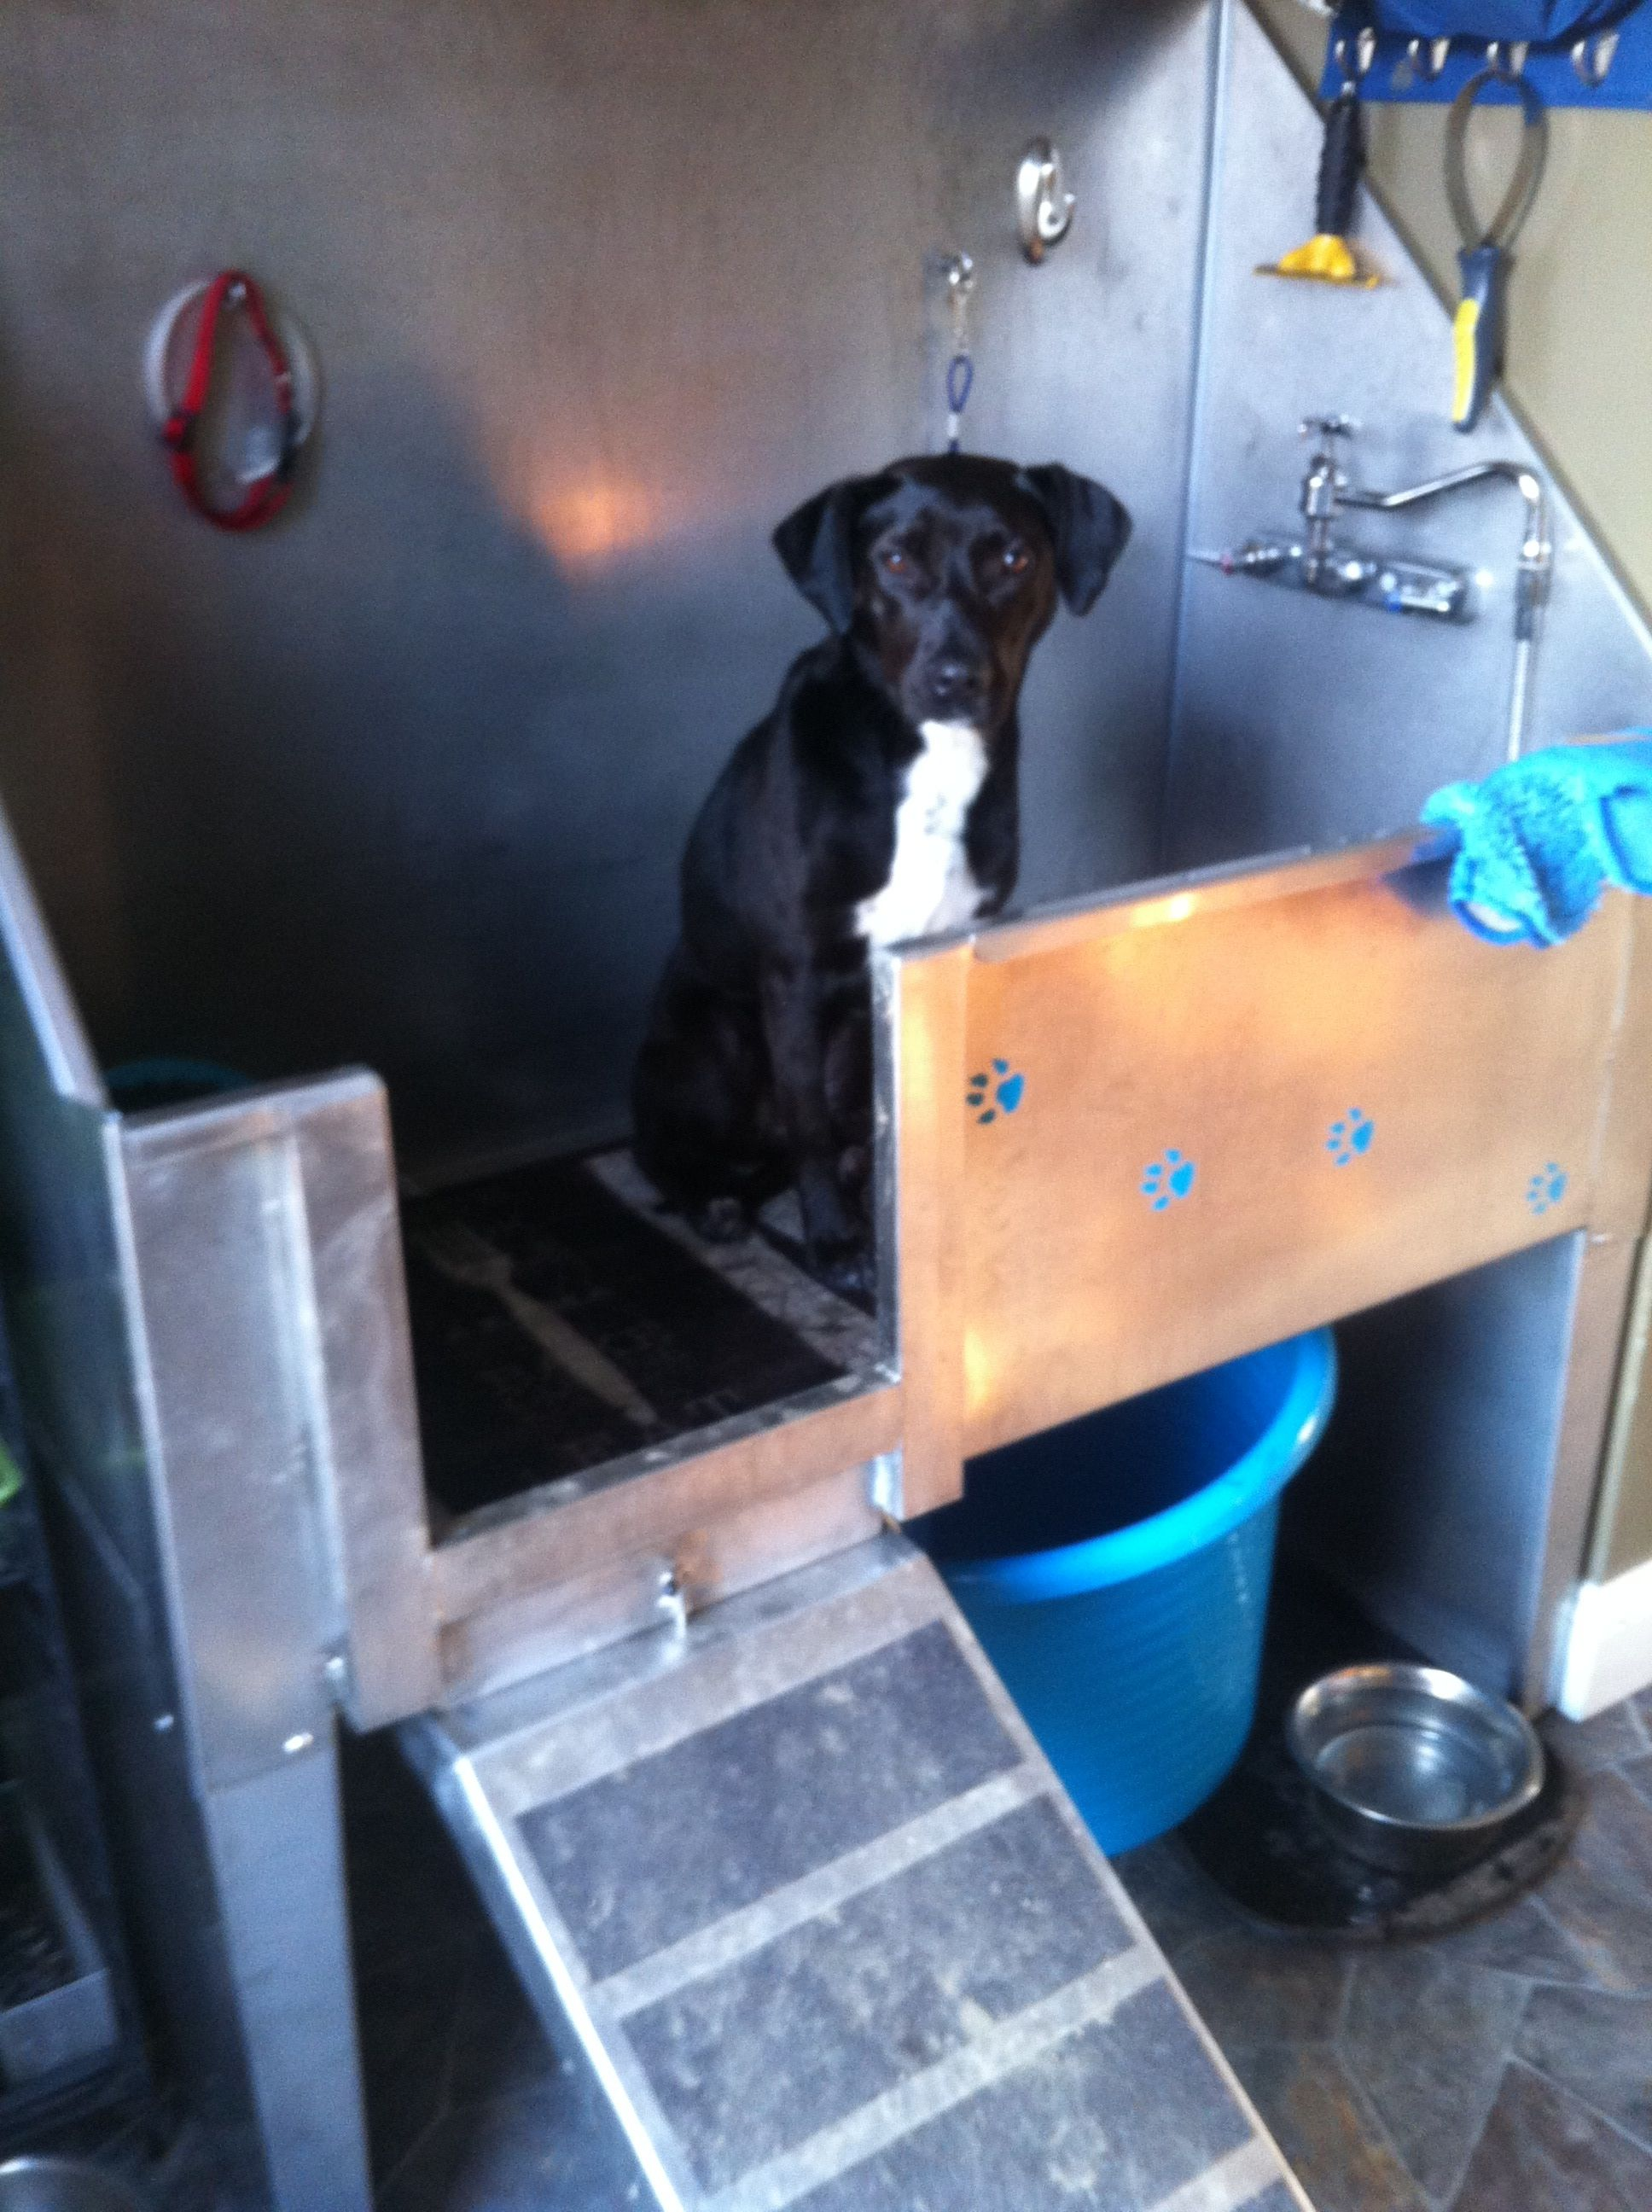 Dog wash foster dog squeaky clean stainless steel tub grooming dog wash foster dog squeaky clean stainless steel tub grooming solutioingenieria Images